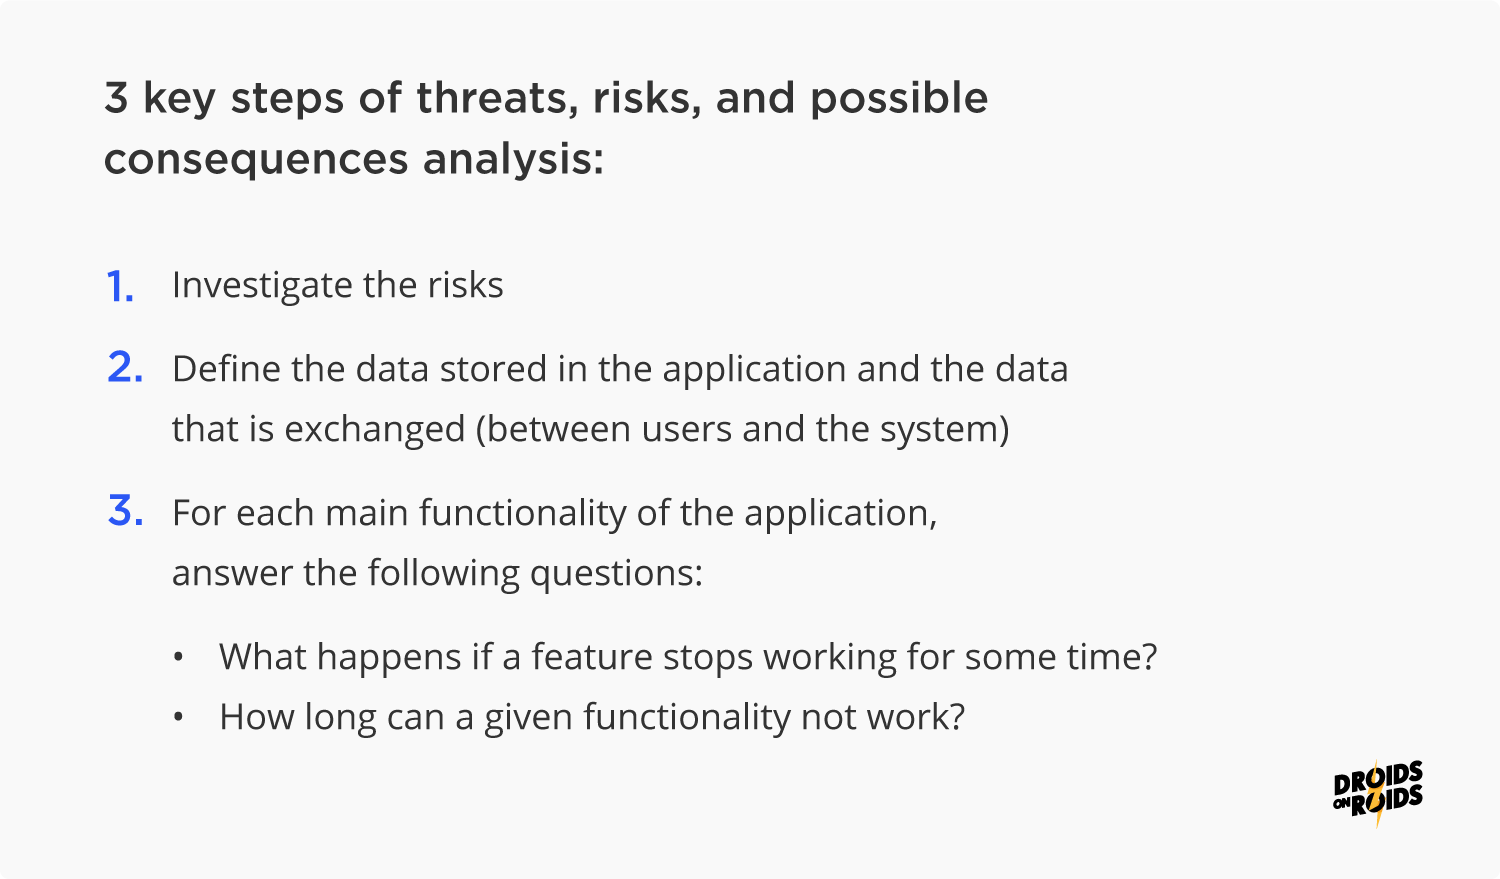 How to conduct analysis of app security threats and risks?